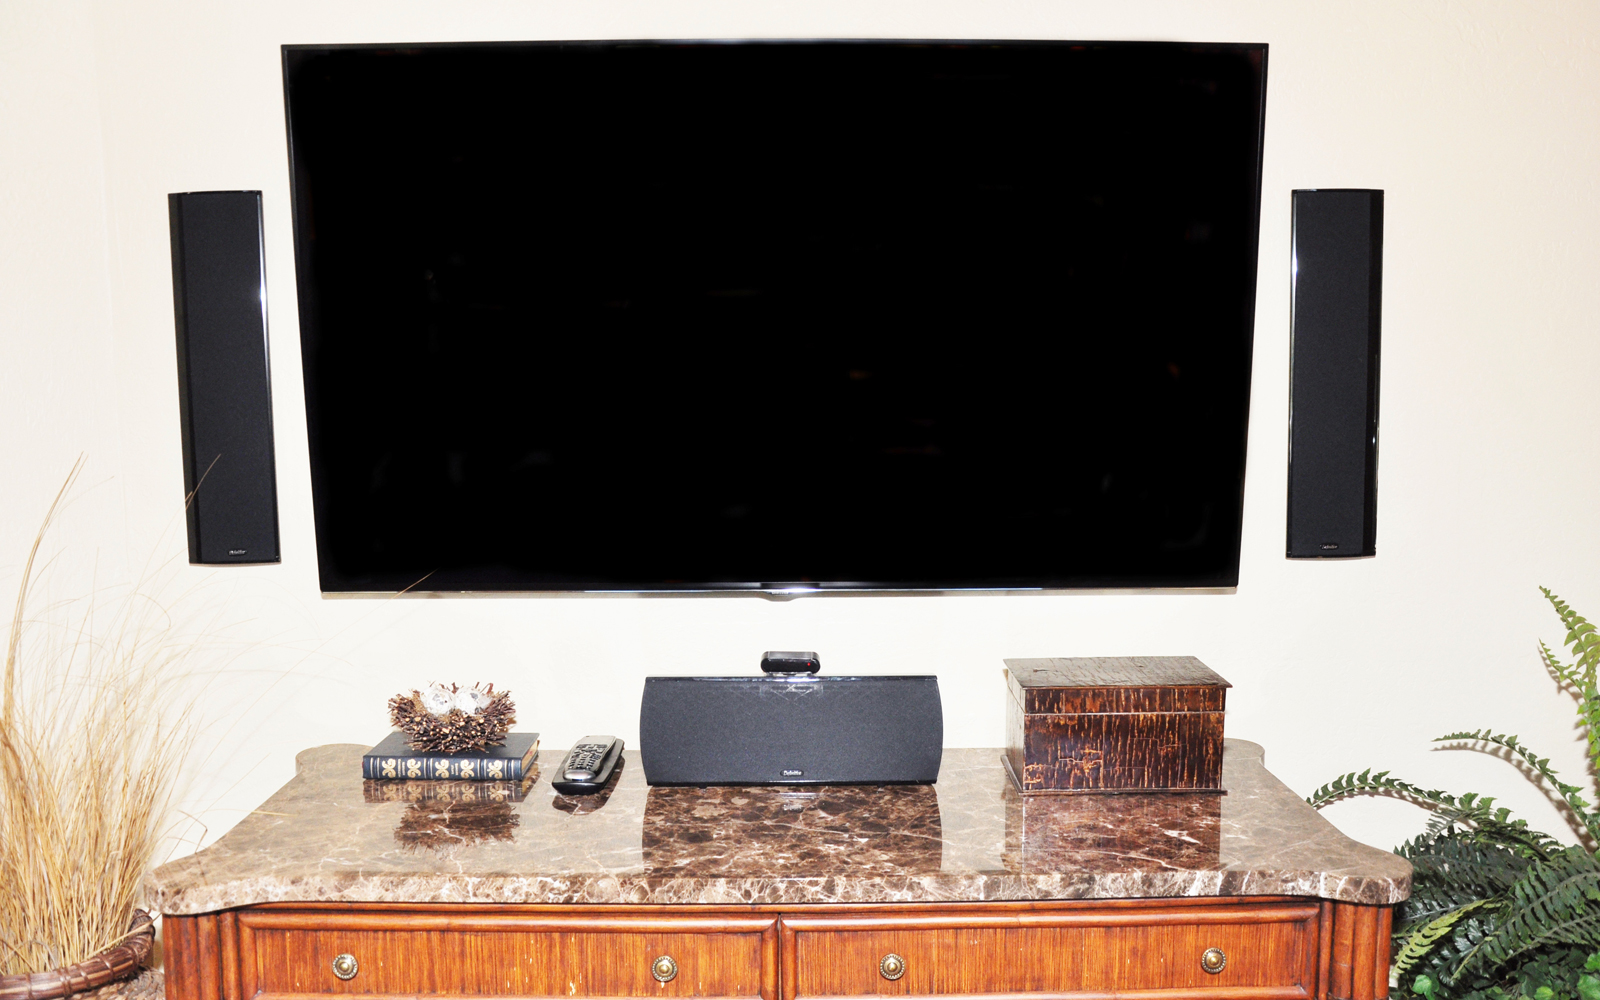 Total Tech Team | Home Theater and Network Install - Total Tech Team